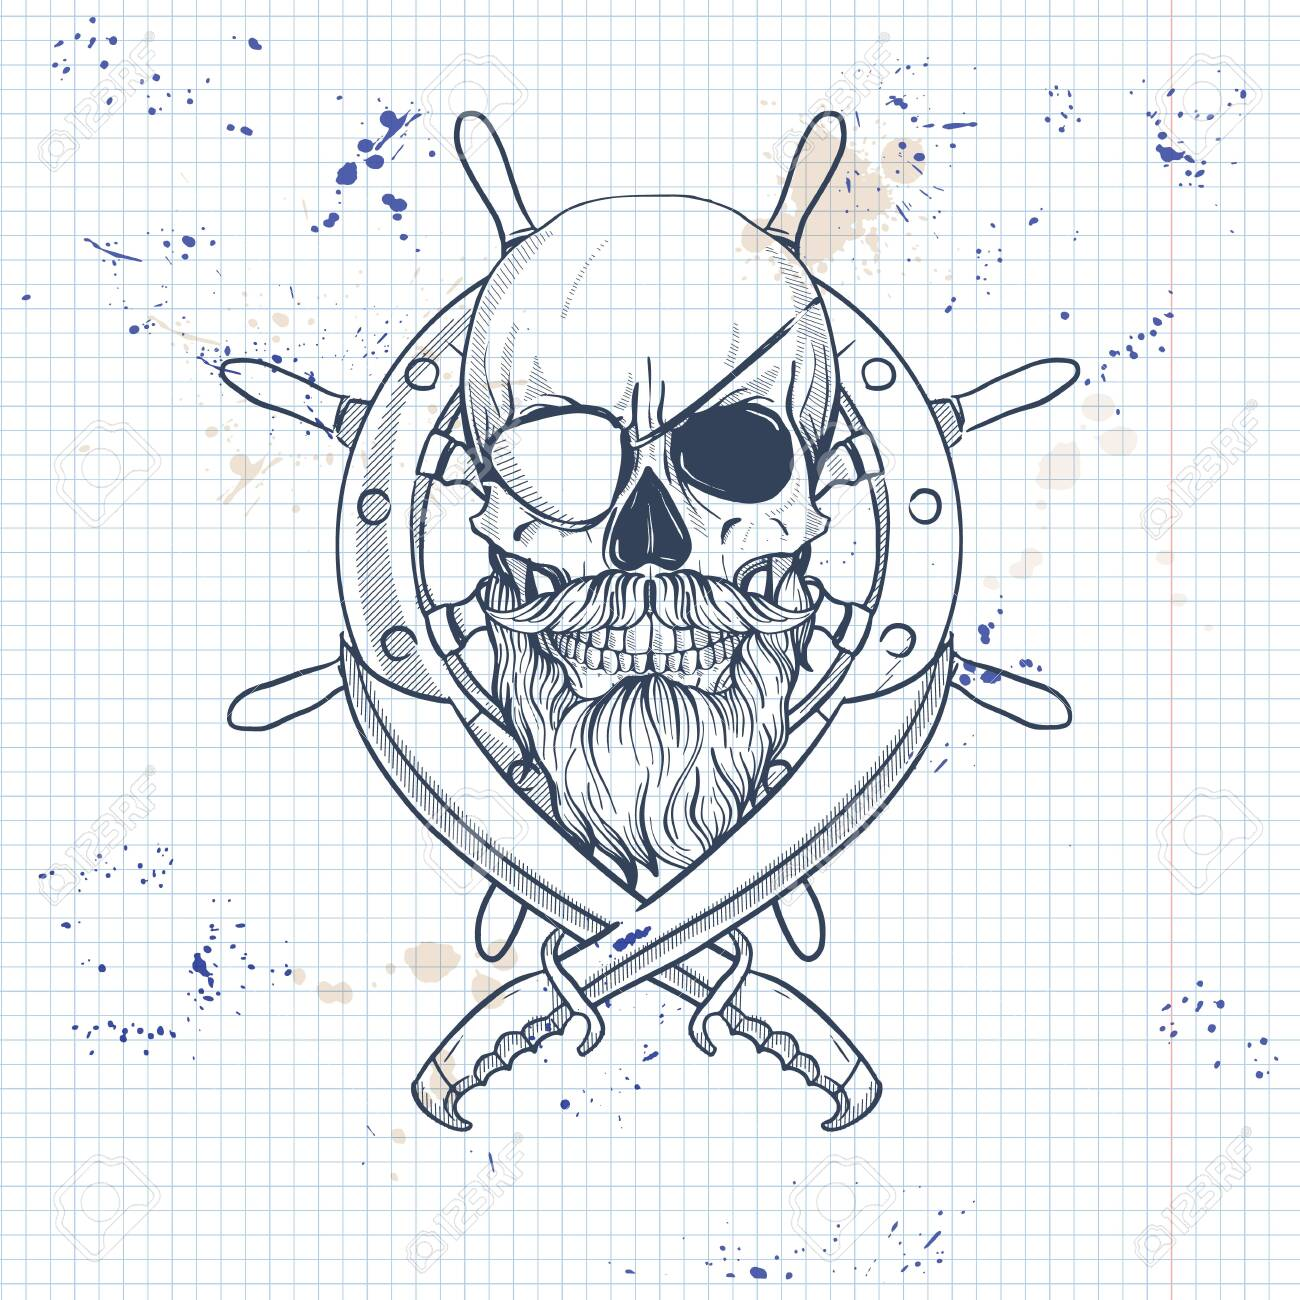 Sketch Pirate Skull With Sword Beard And Mustaches Eye Patch Royalty Free Cliparts Vectors And Stock Illustration Image 130039556